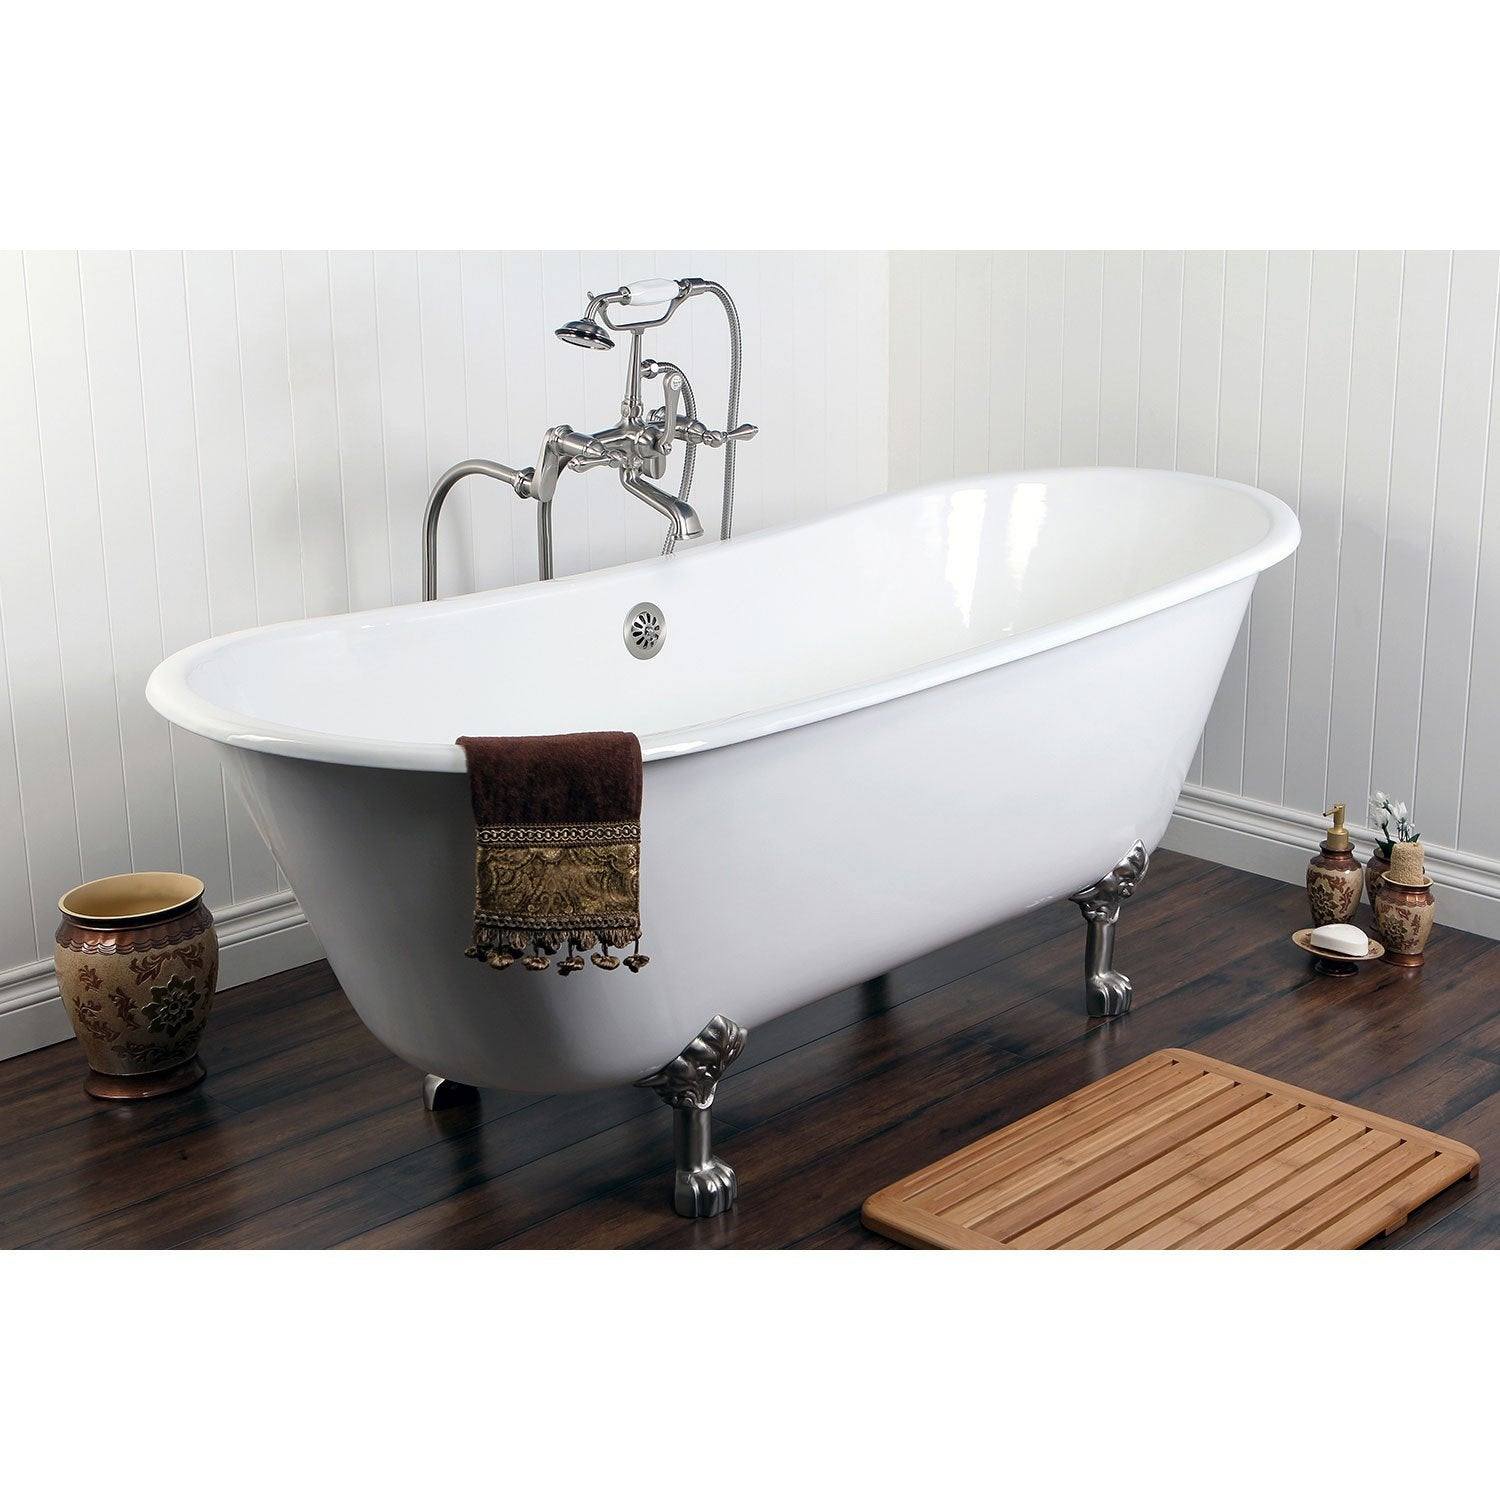 "67"" Clawfoot Tub w Freestanding Satin Nickel Tub Faucet & Hardware Package CTP35"